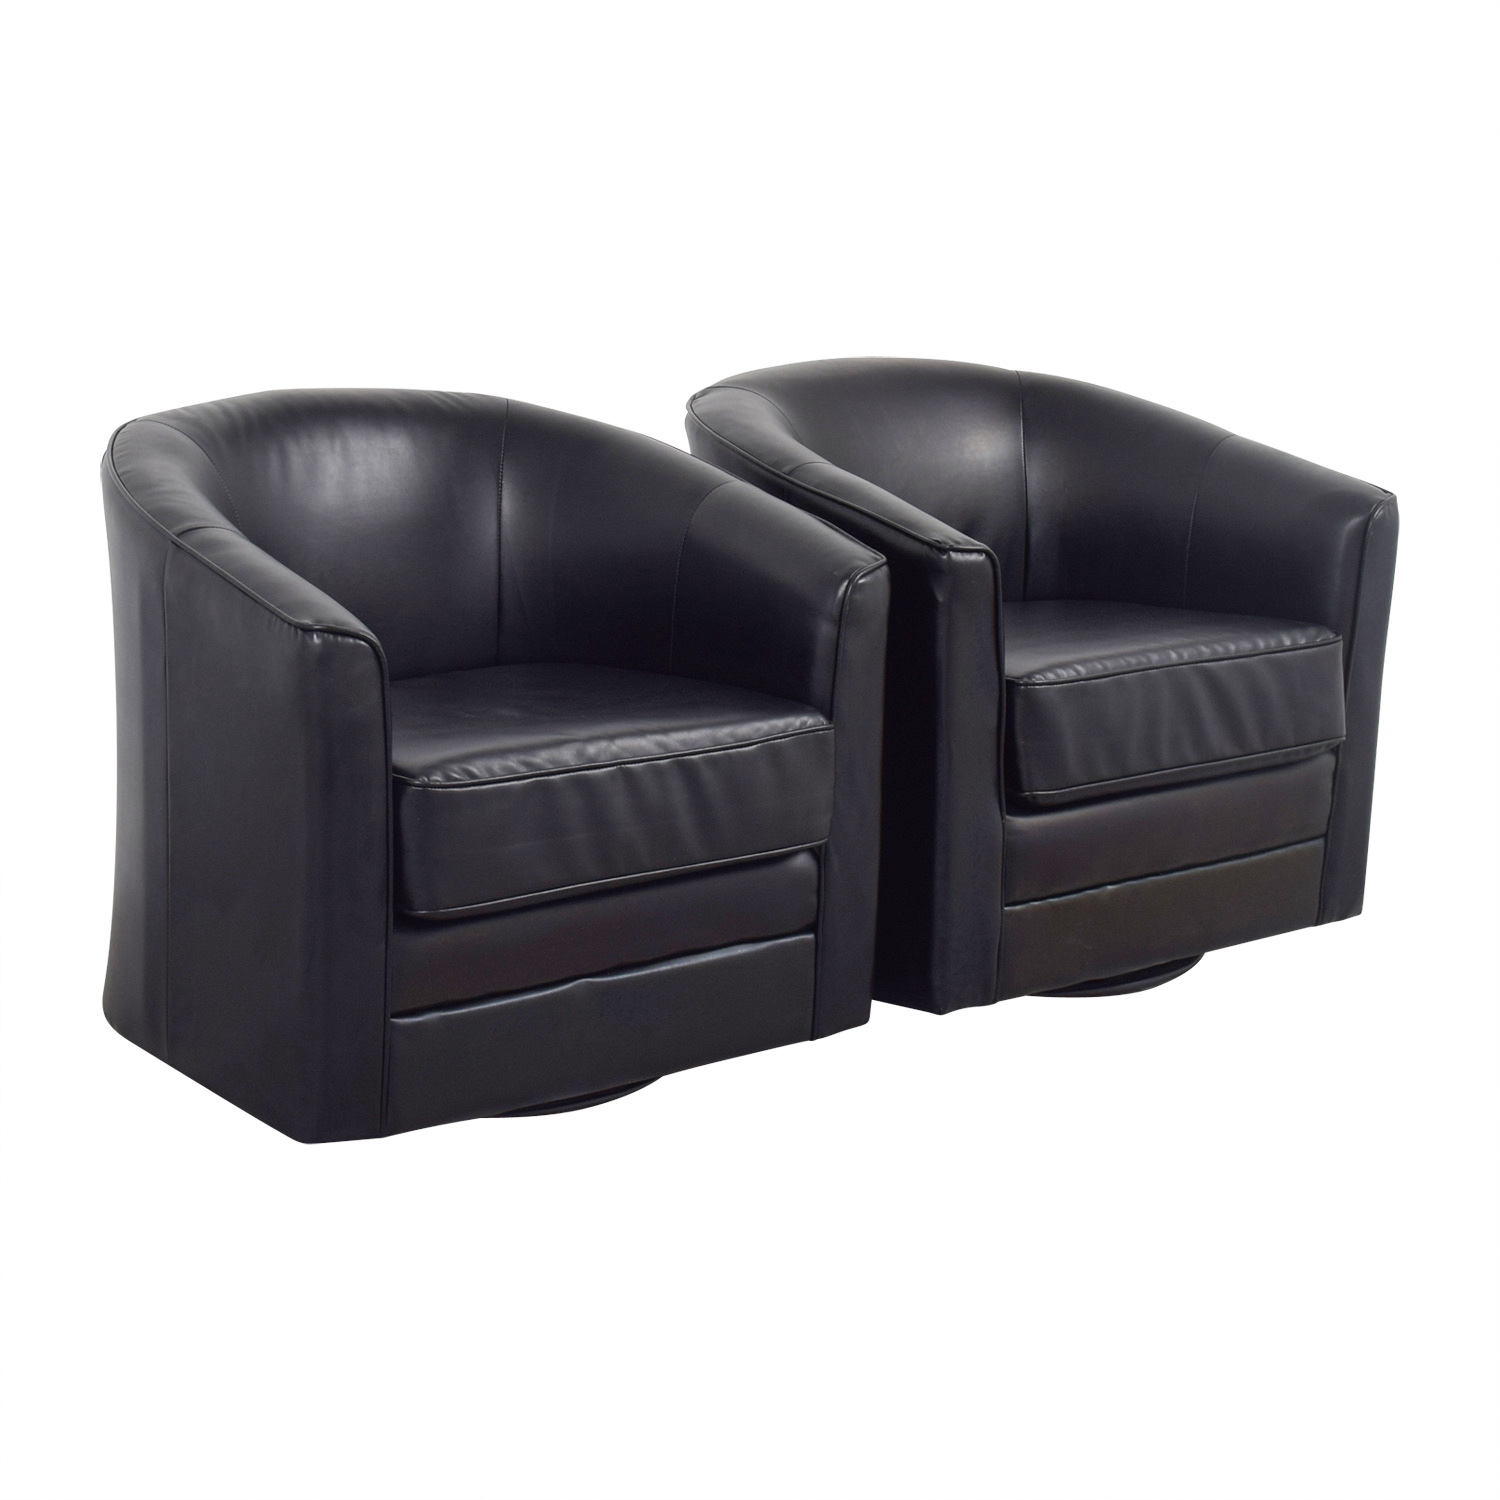 Bobs Furniture Chairs Chairs Seating